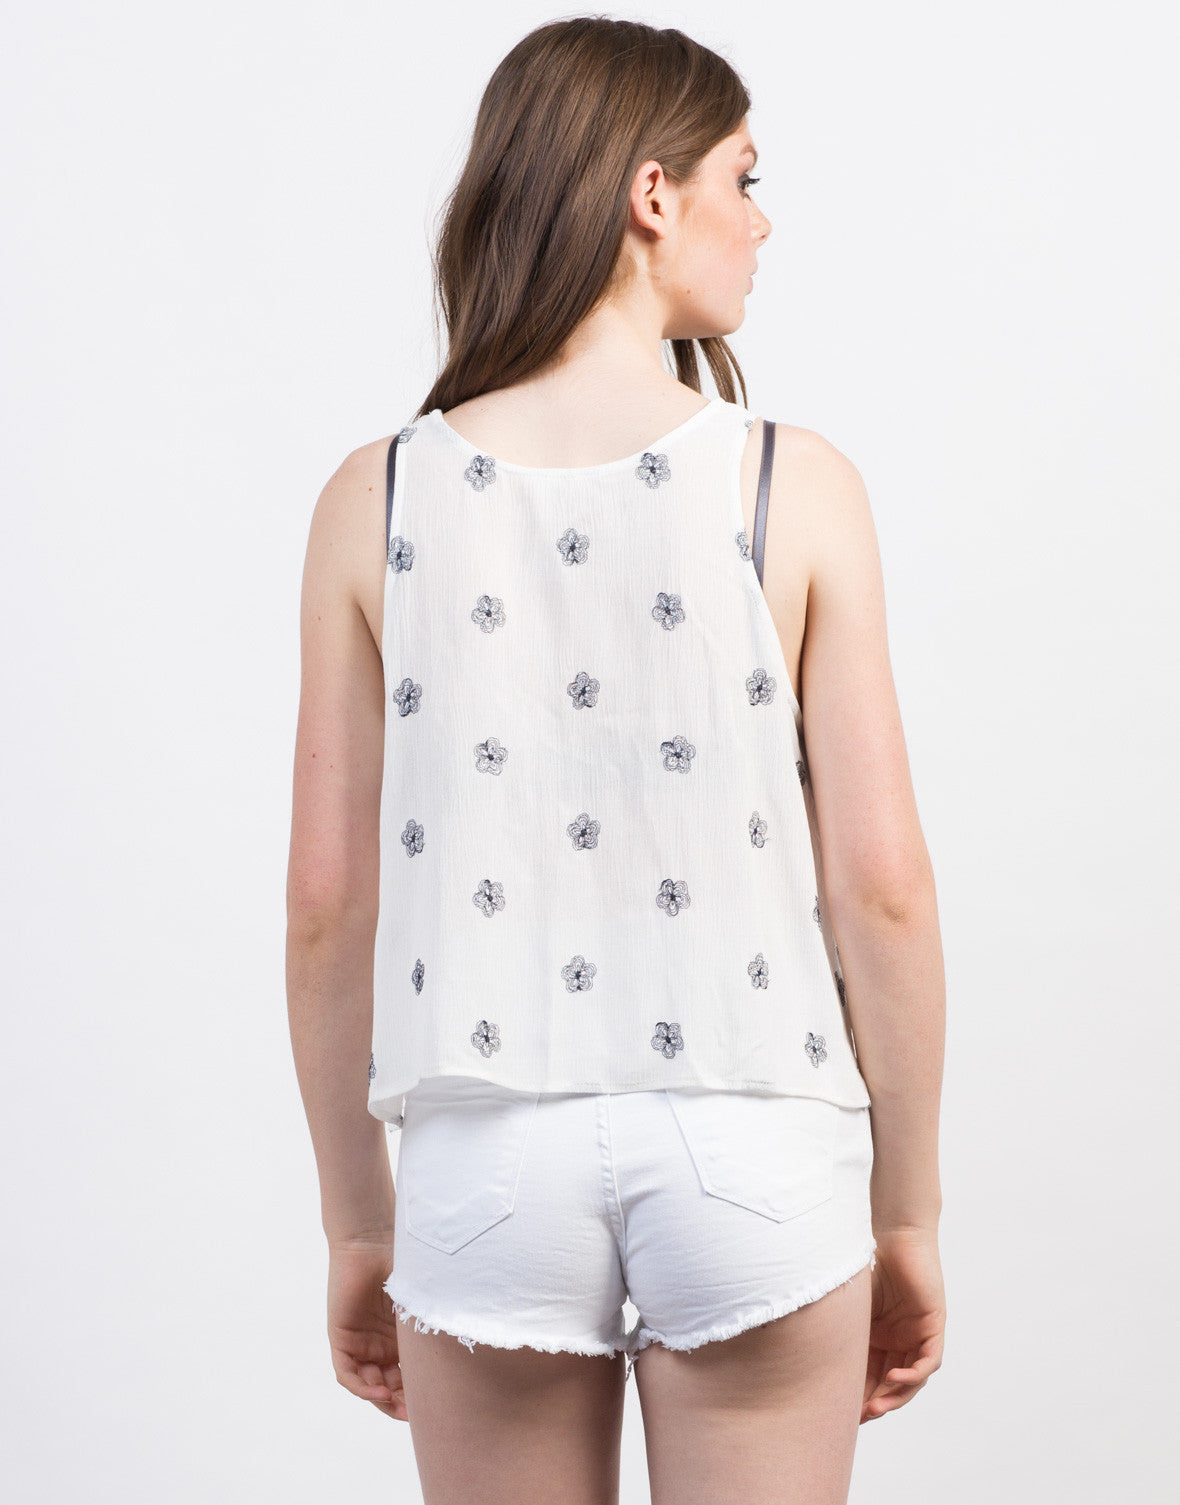 Back View of Floral Side Tie Tank